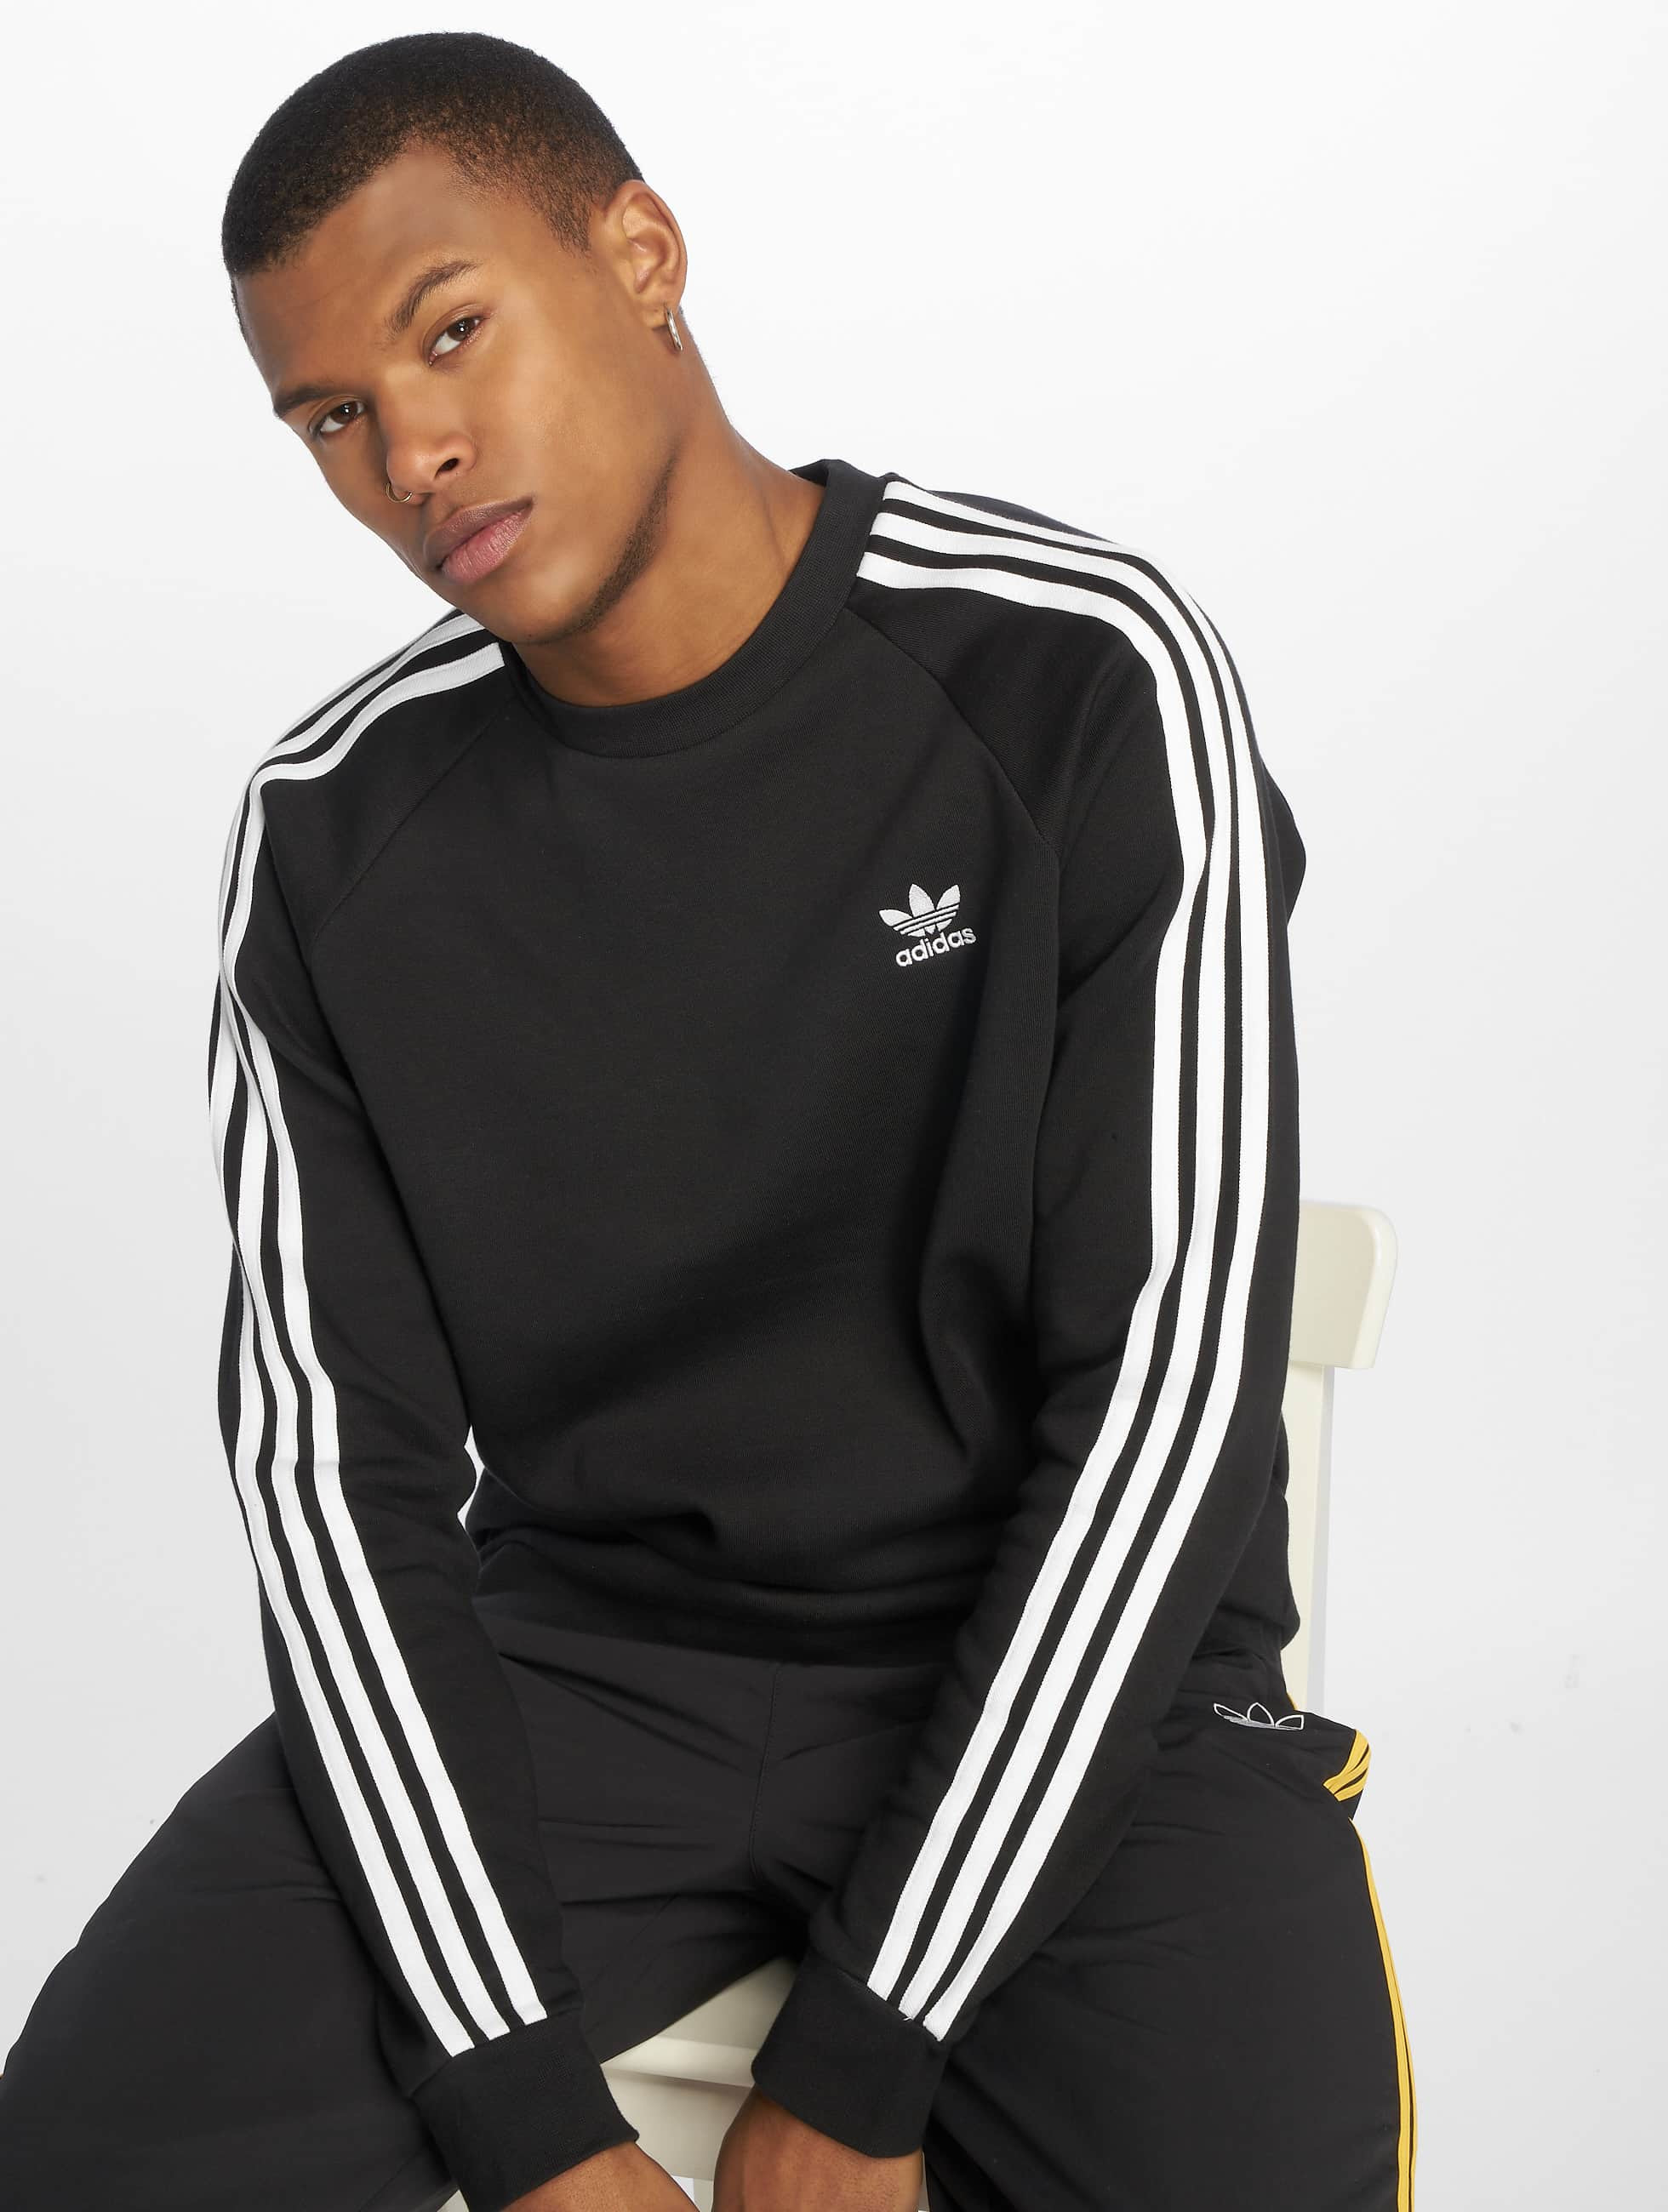 Adidas Originals 3 Stripes Sweatshirt Black